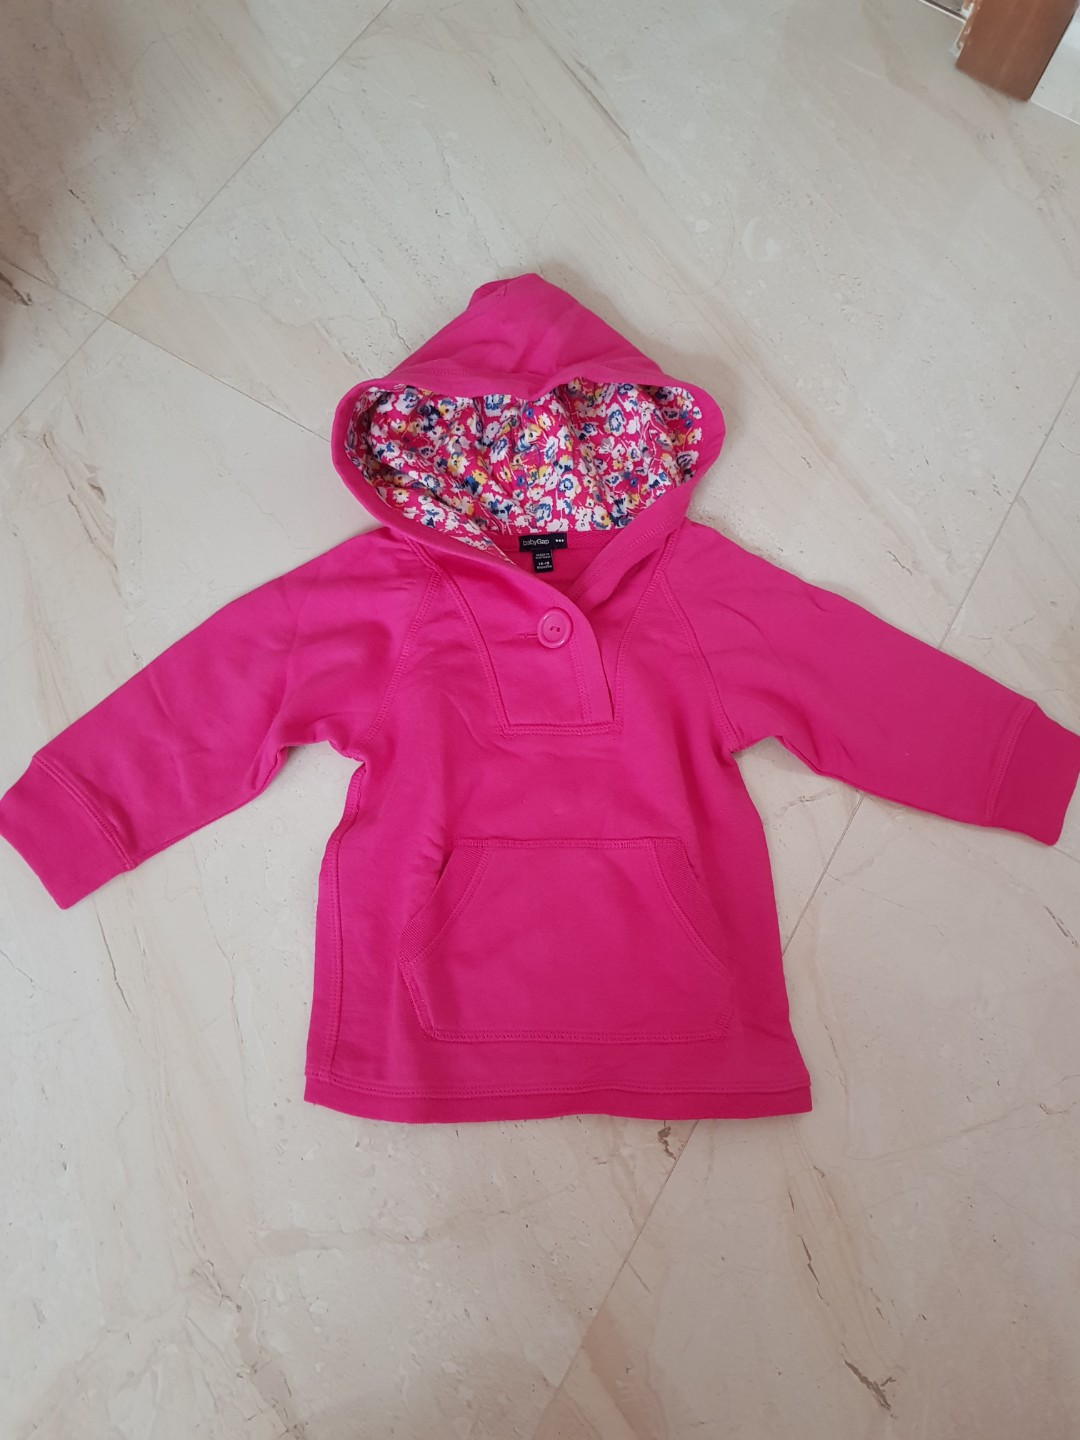 a59792d63786 Baby Gap Jacket   Top size 12-18m